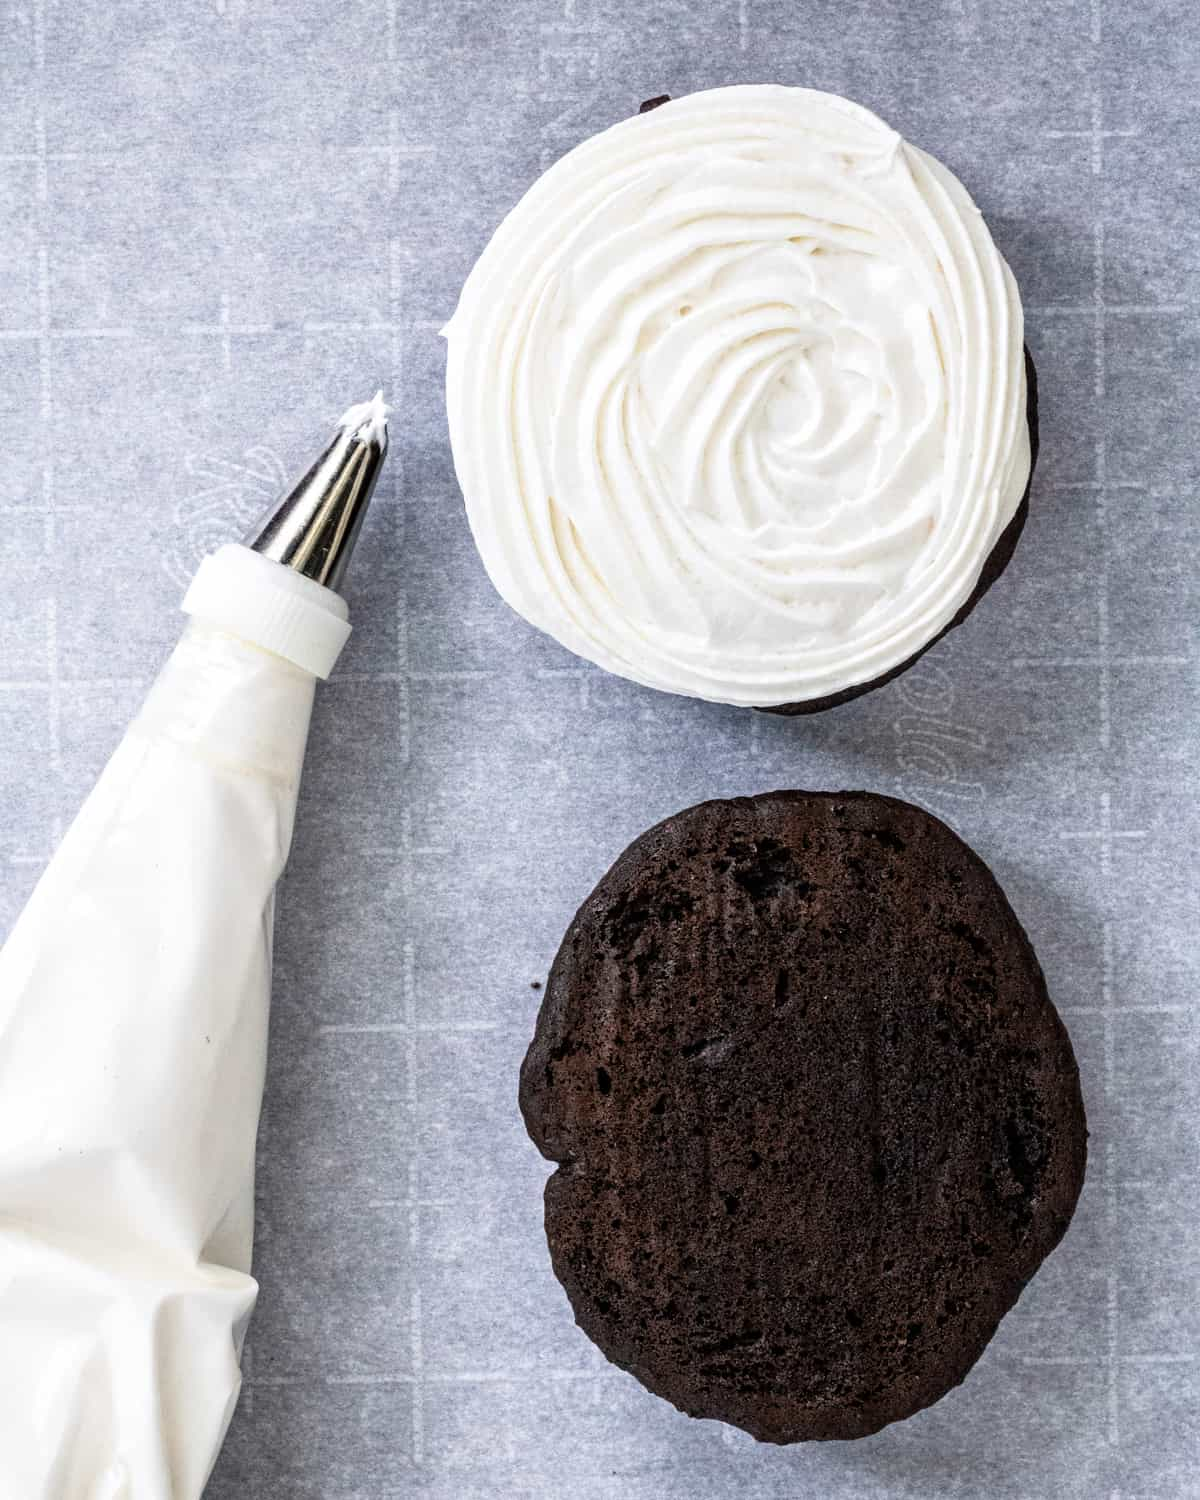 A Whoopie Pie with the top off, and a piping bag of filling next to it.